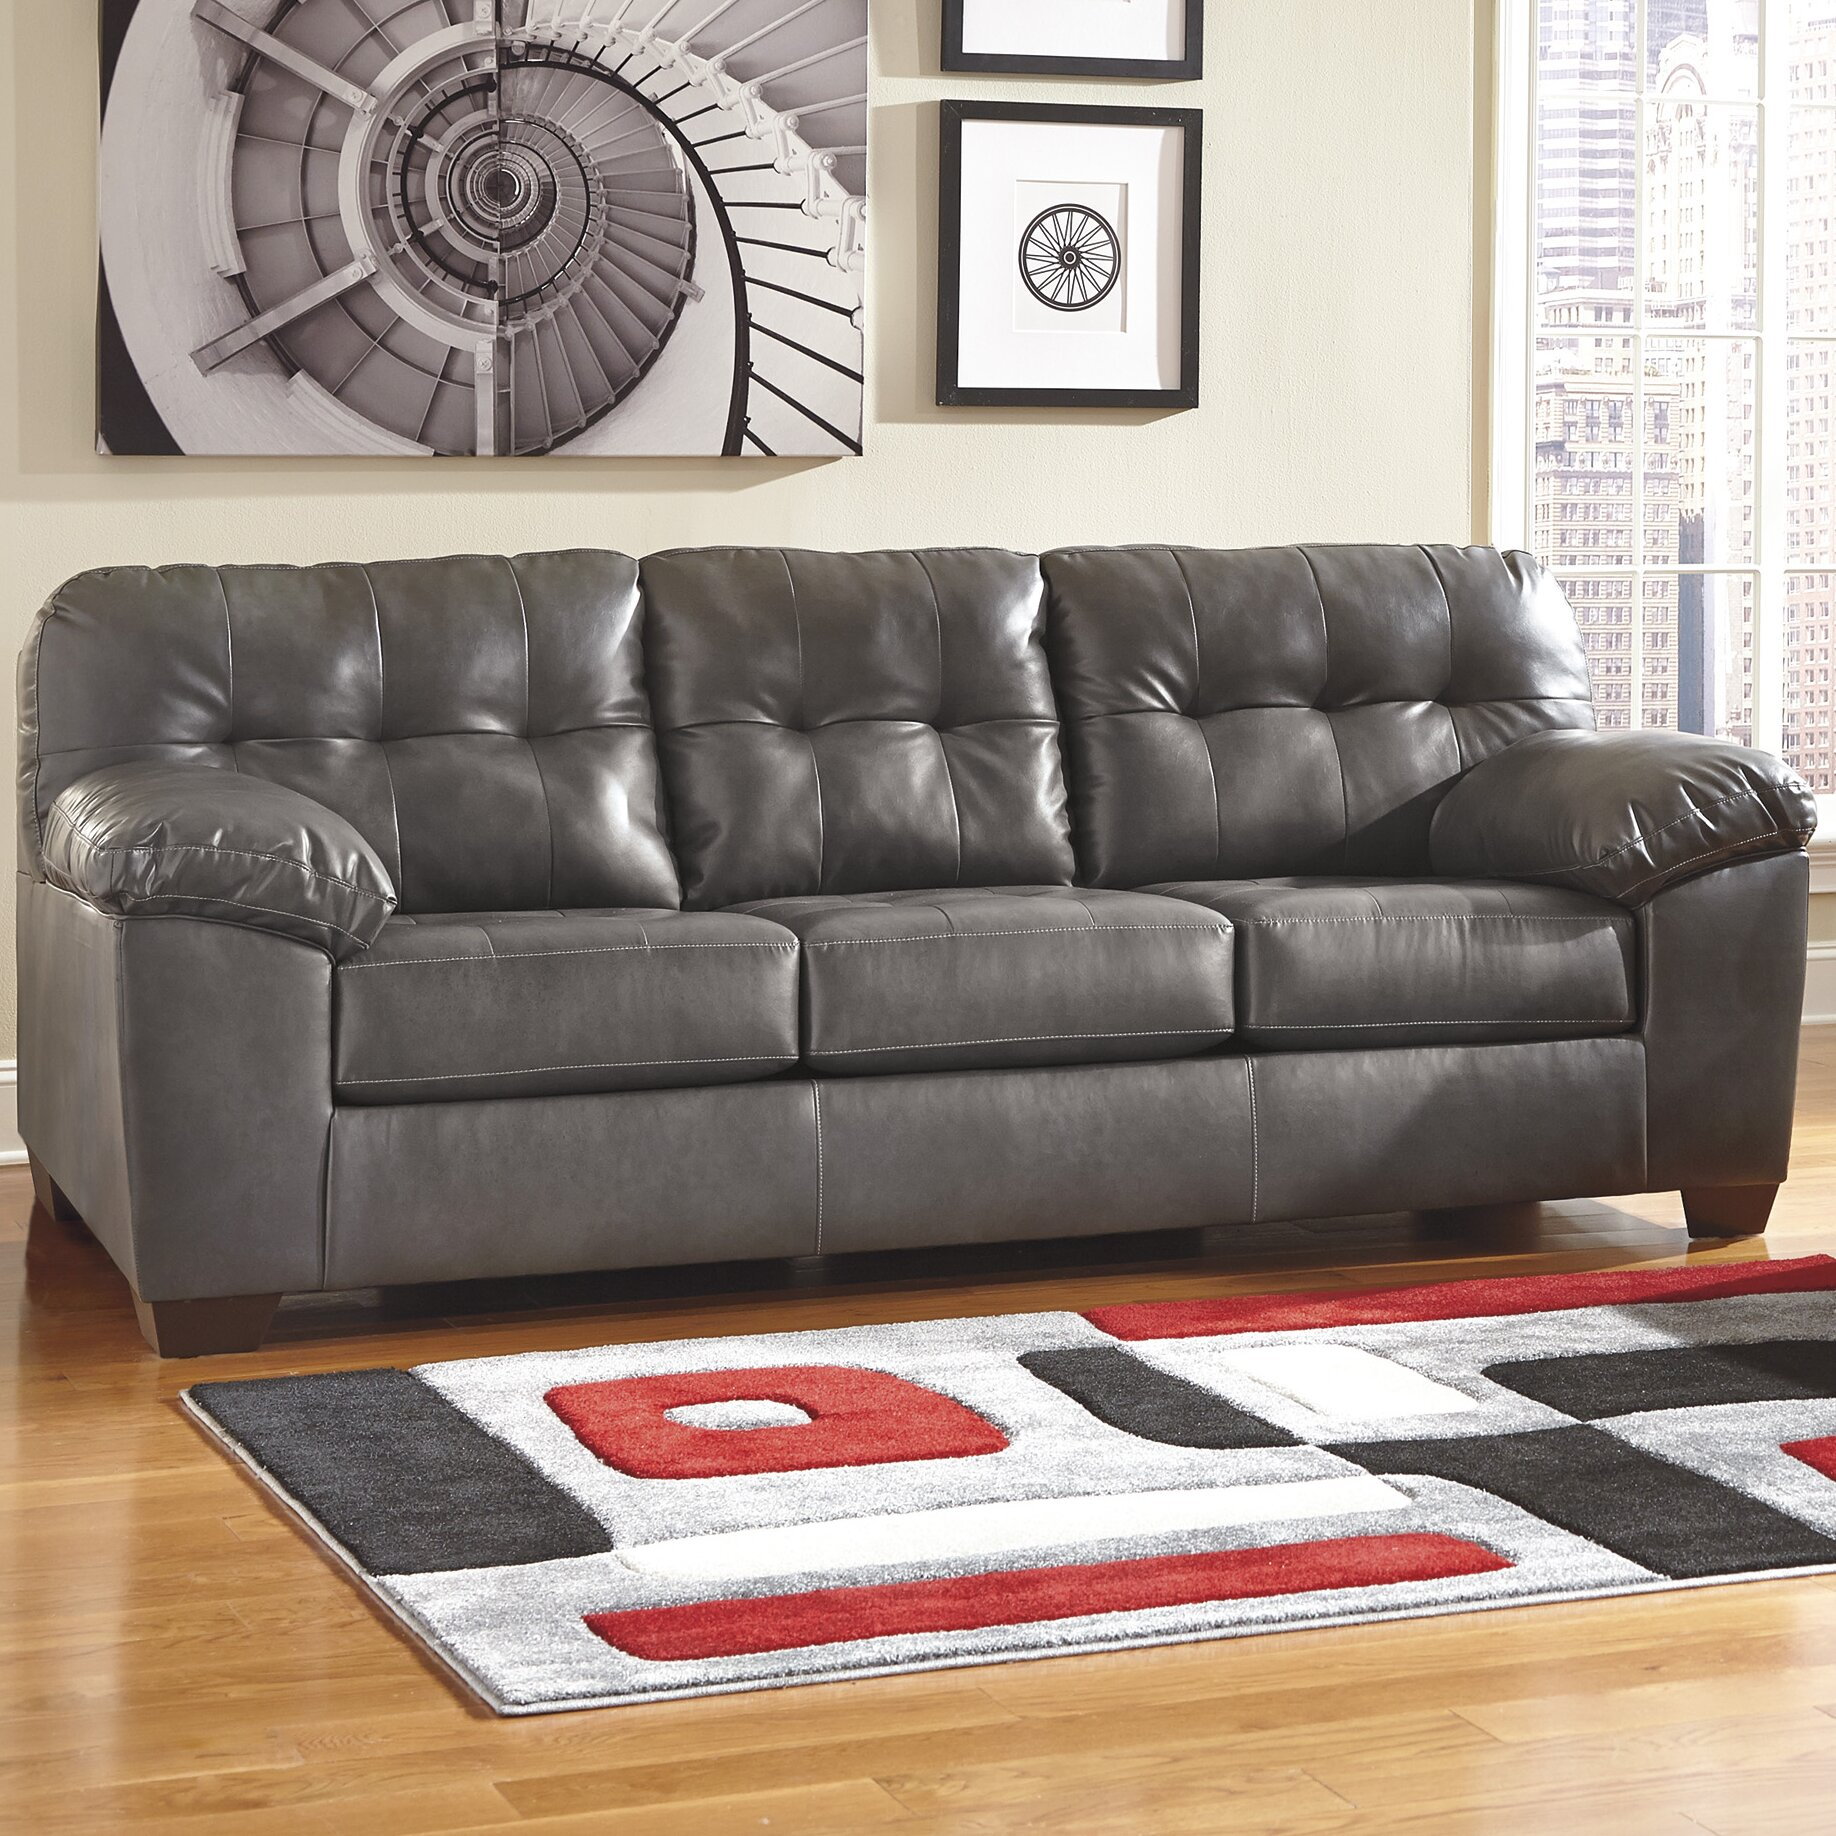 Signature Design by Ashley Sofa & Reviews